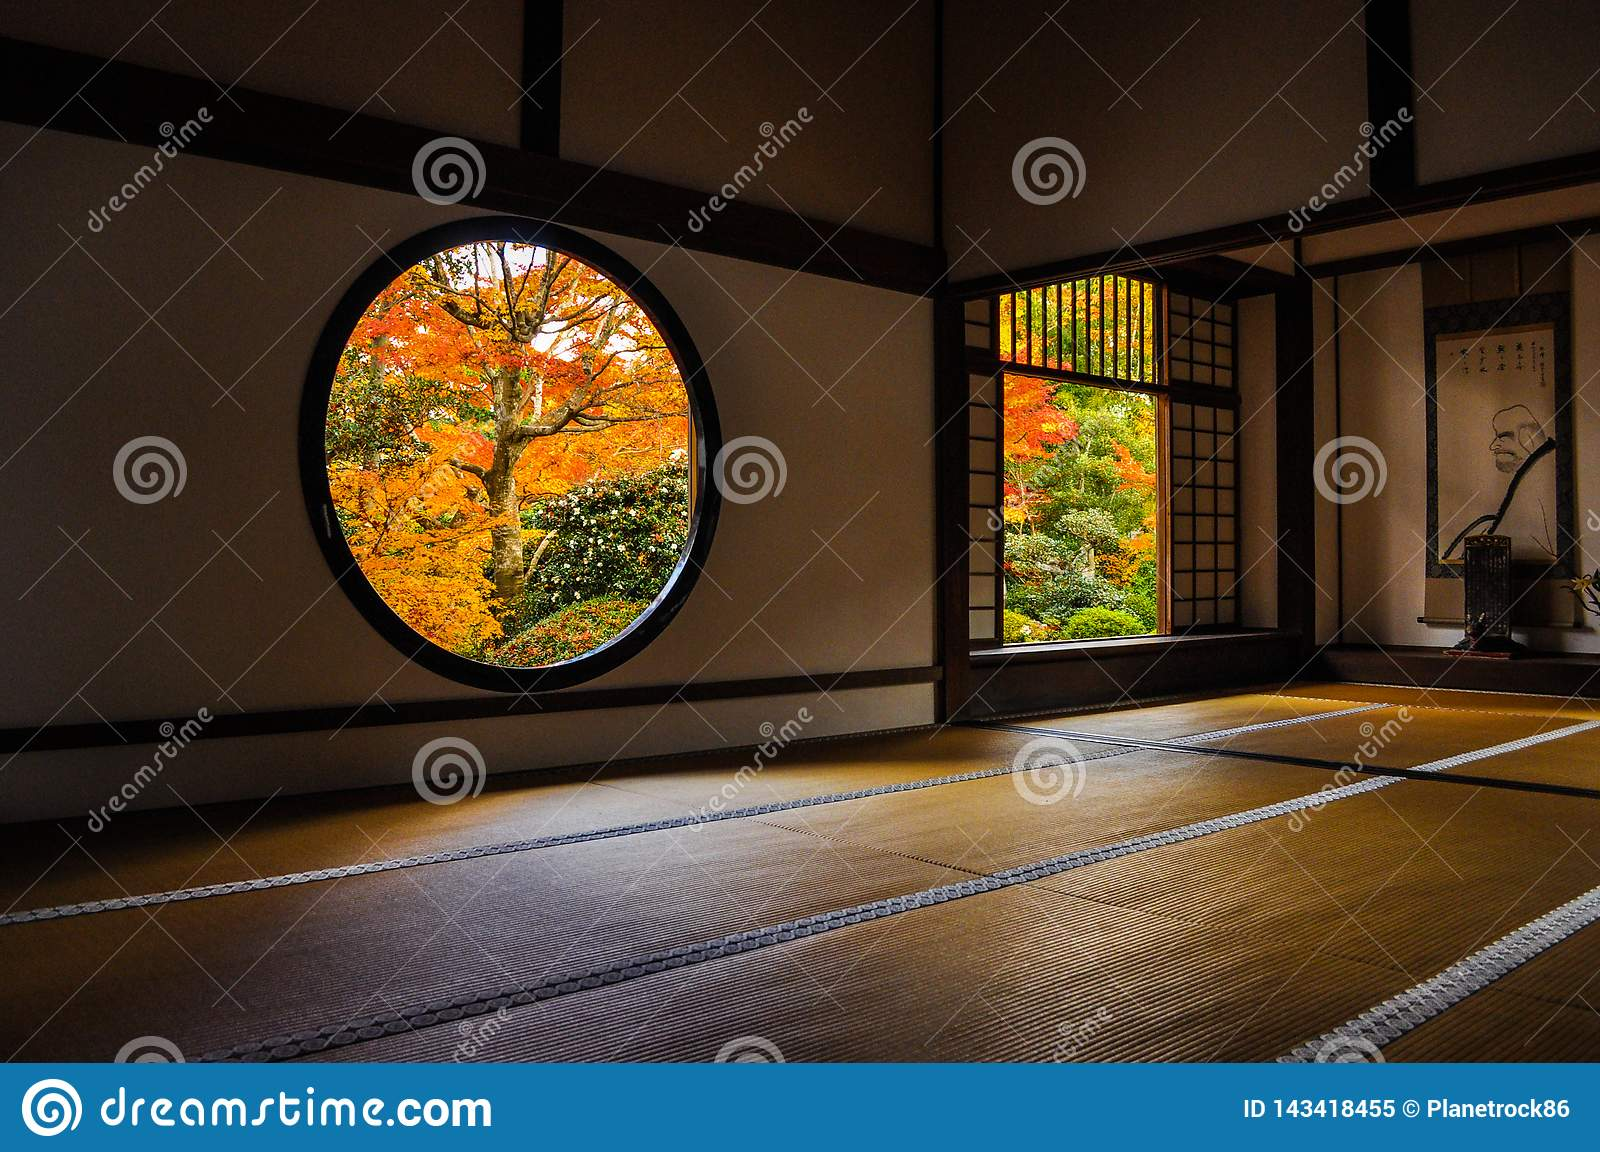 Japanese room in an old temple